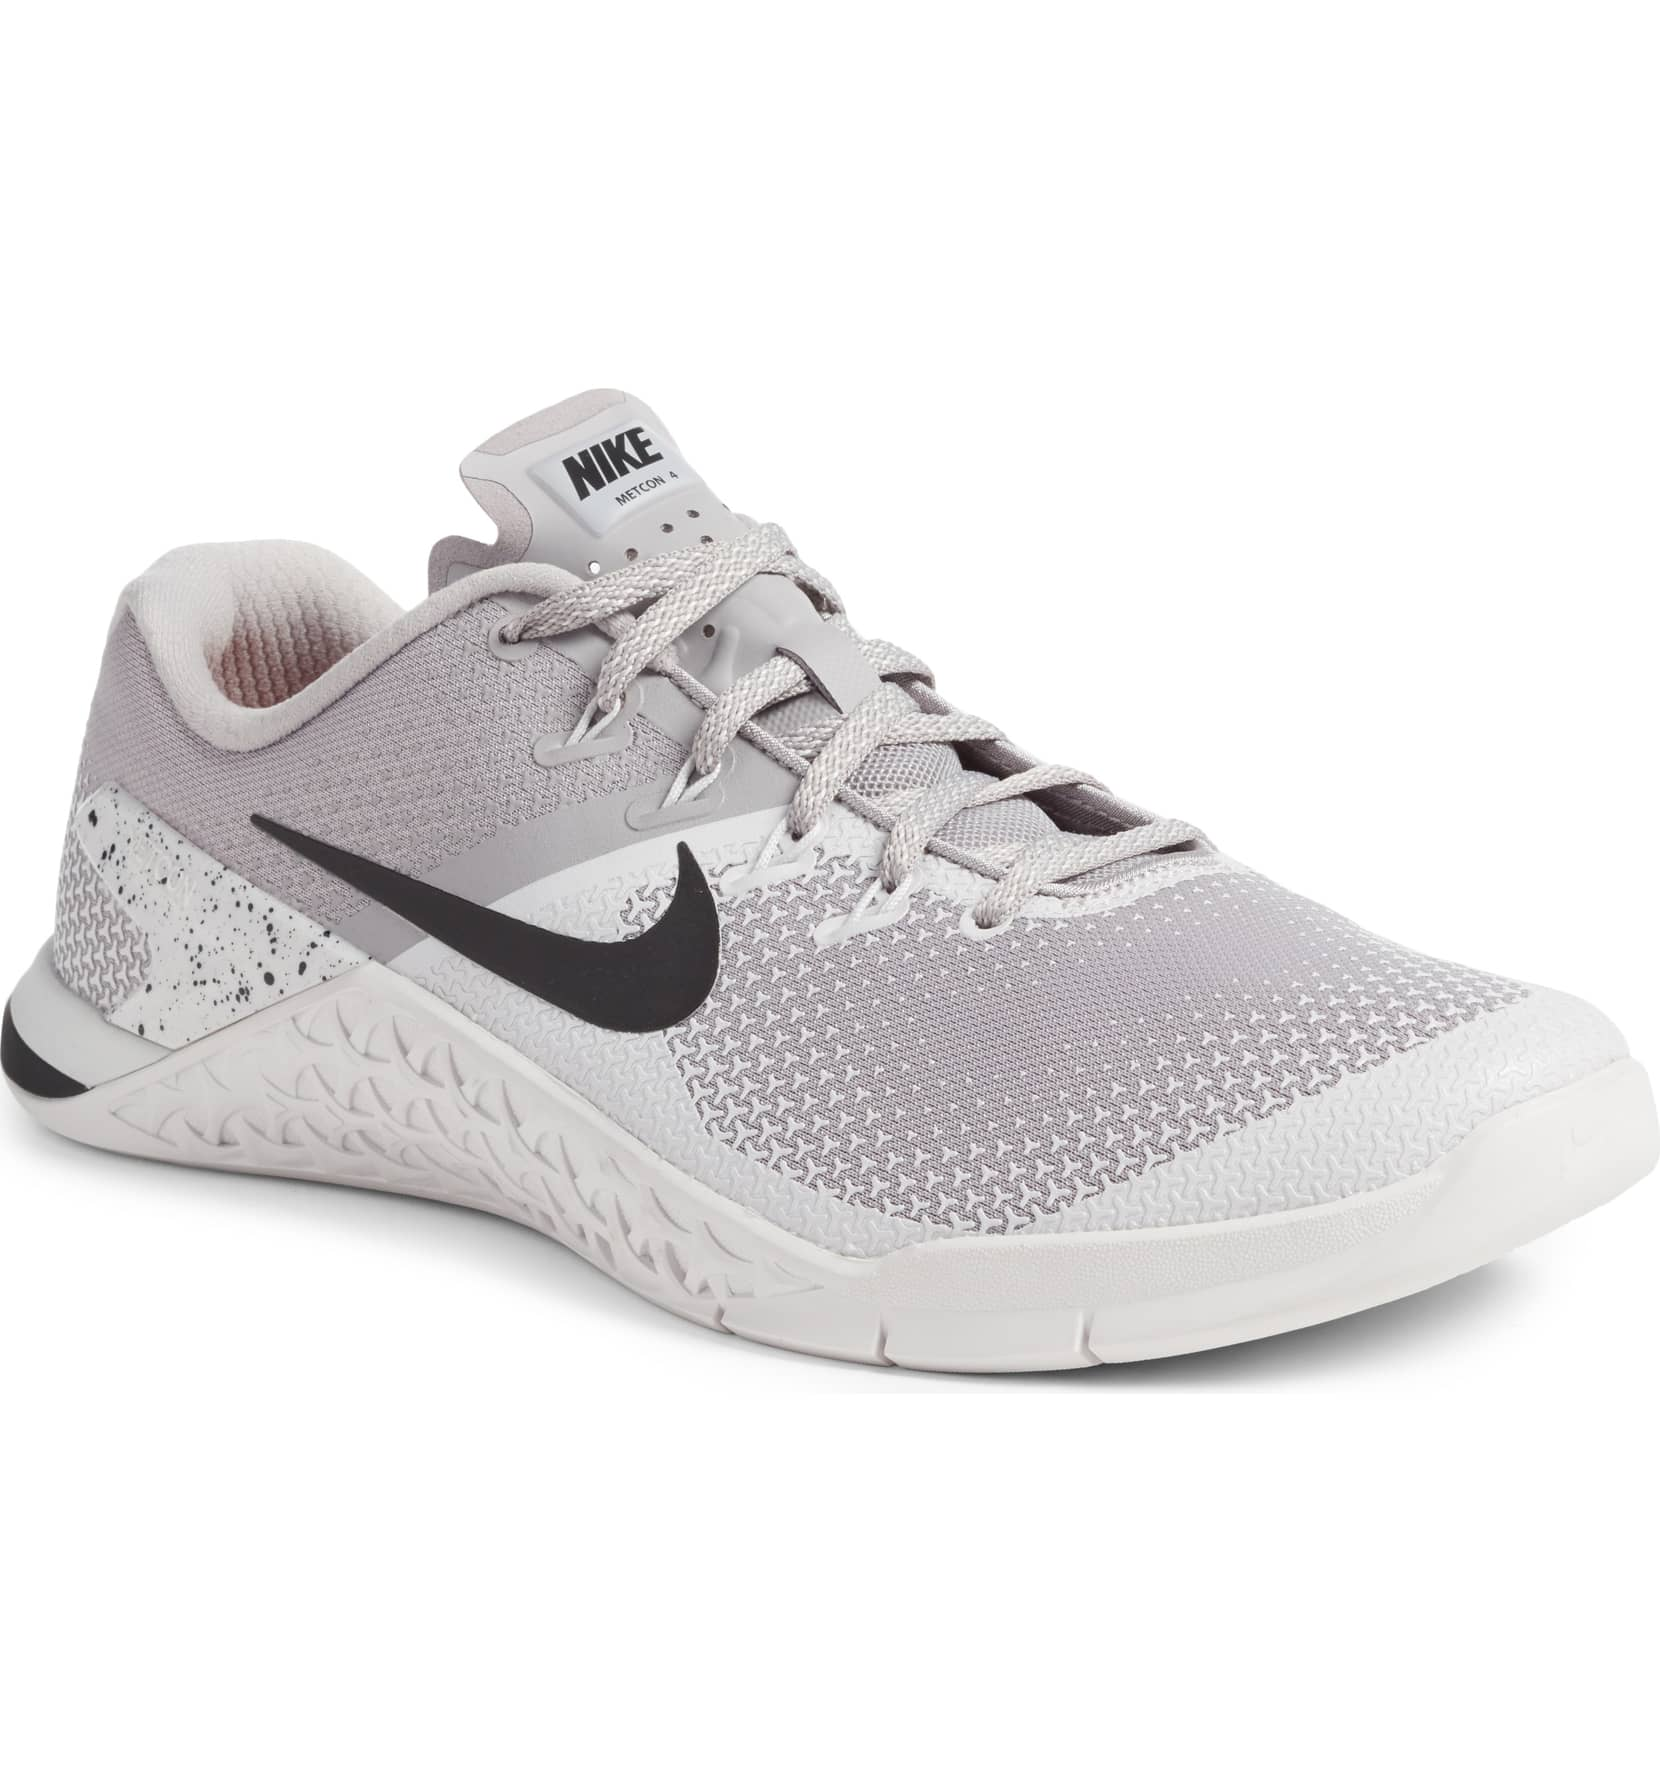 Nordstrom: Nike Metcon 4 Training Shoes